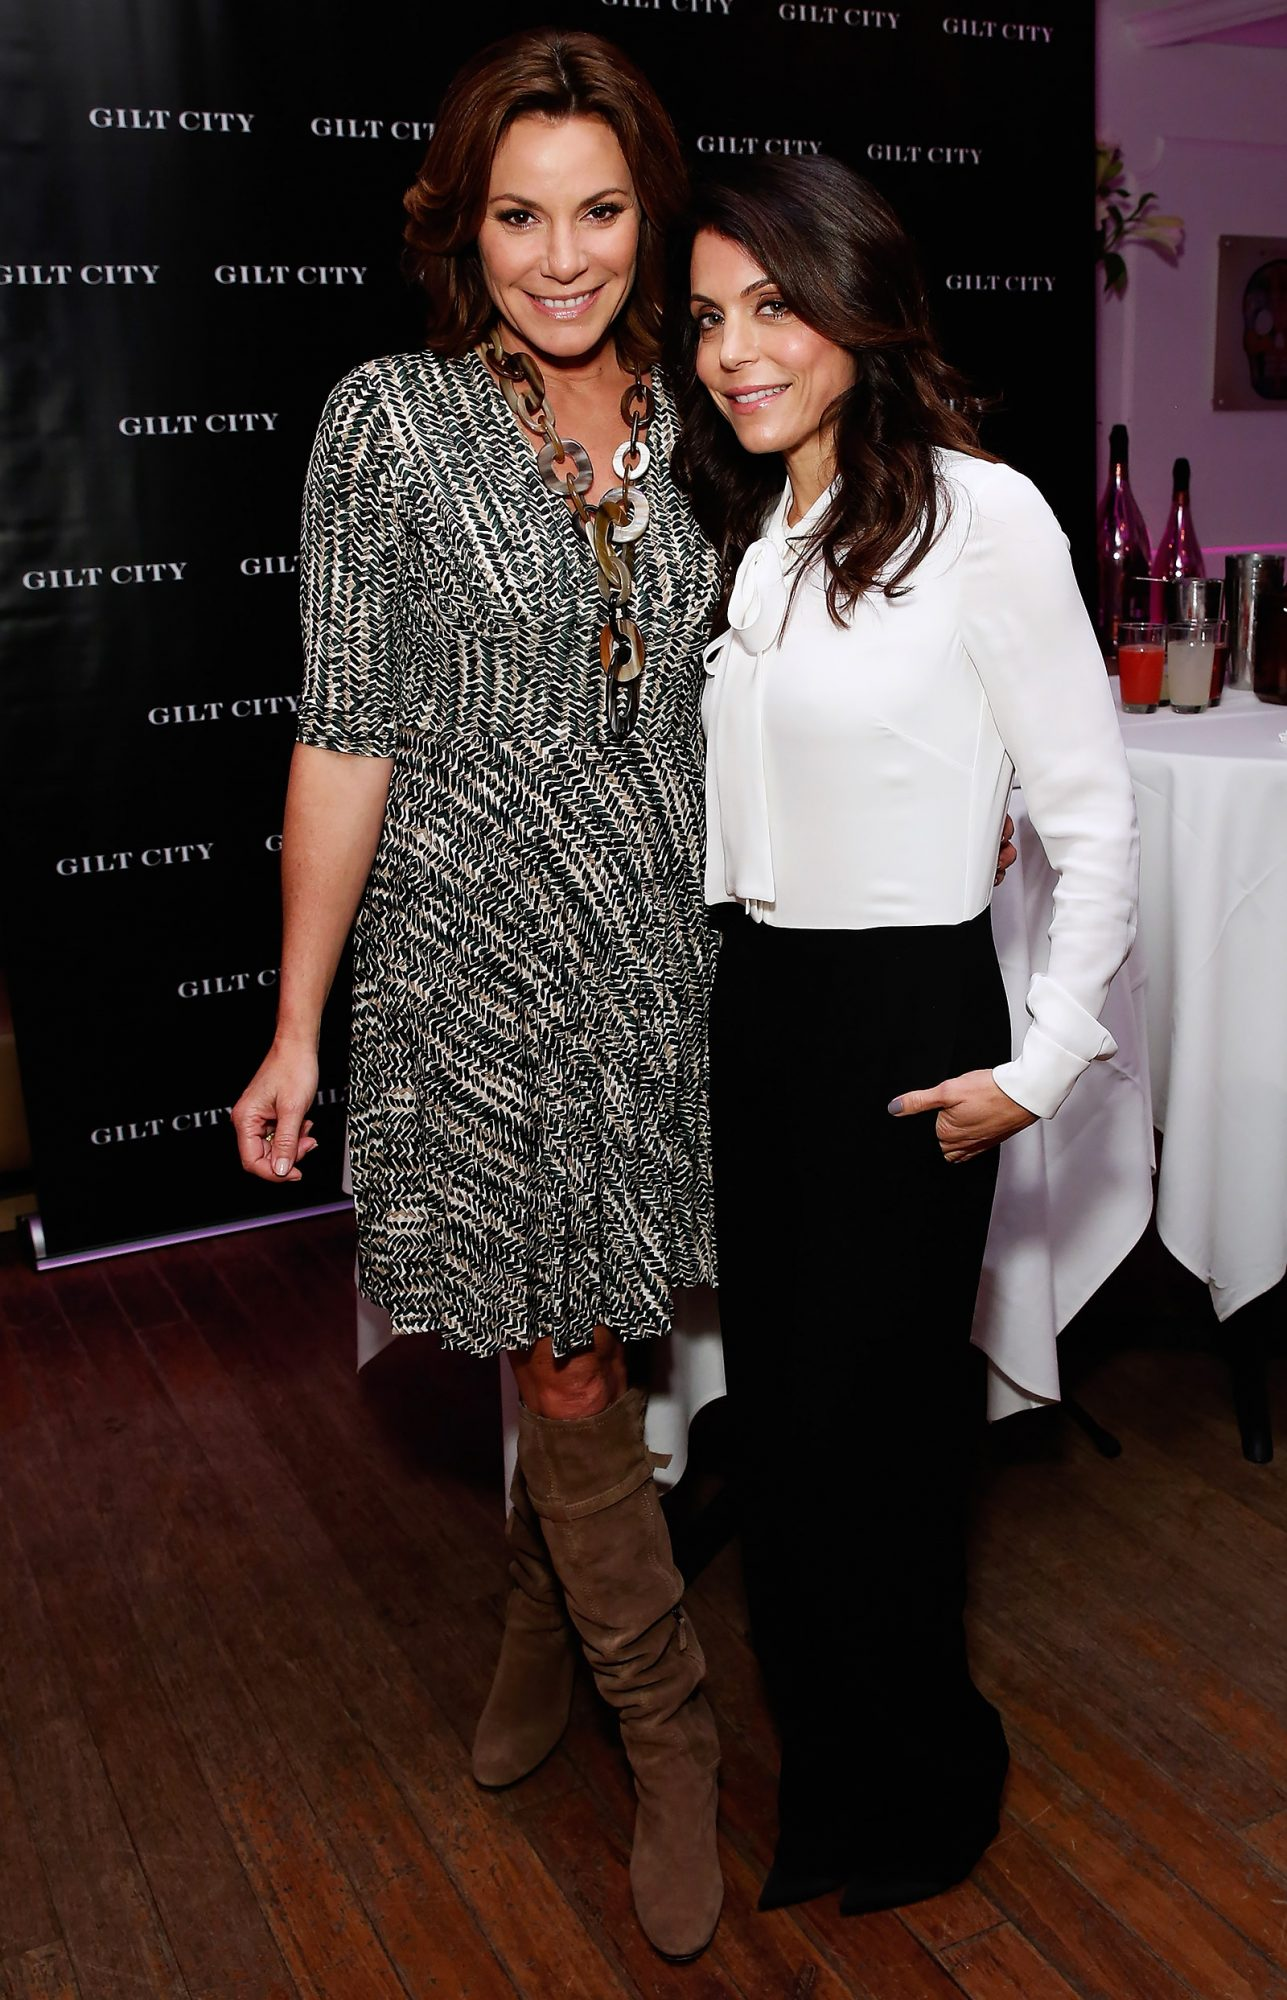 "Gilt City Celebrates The Launch Of Bethenny Frankel's ""Skinnygirl Cocktails: 100 Fun & Flirty Guilt-Free Recipes"" Book"